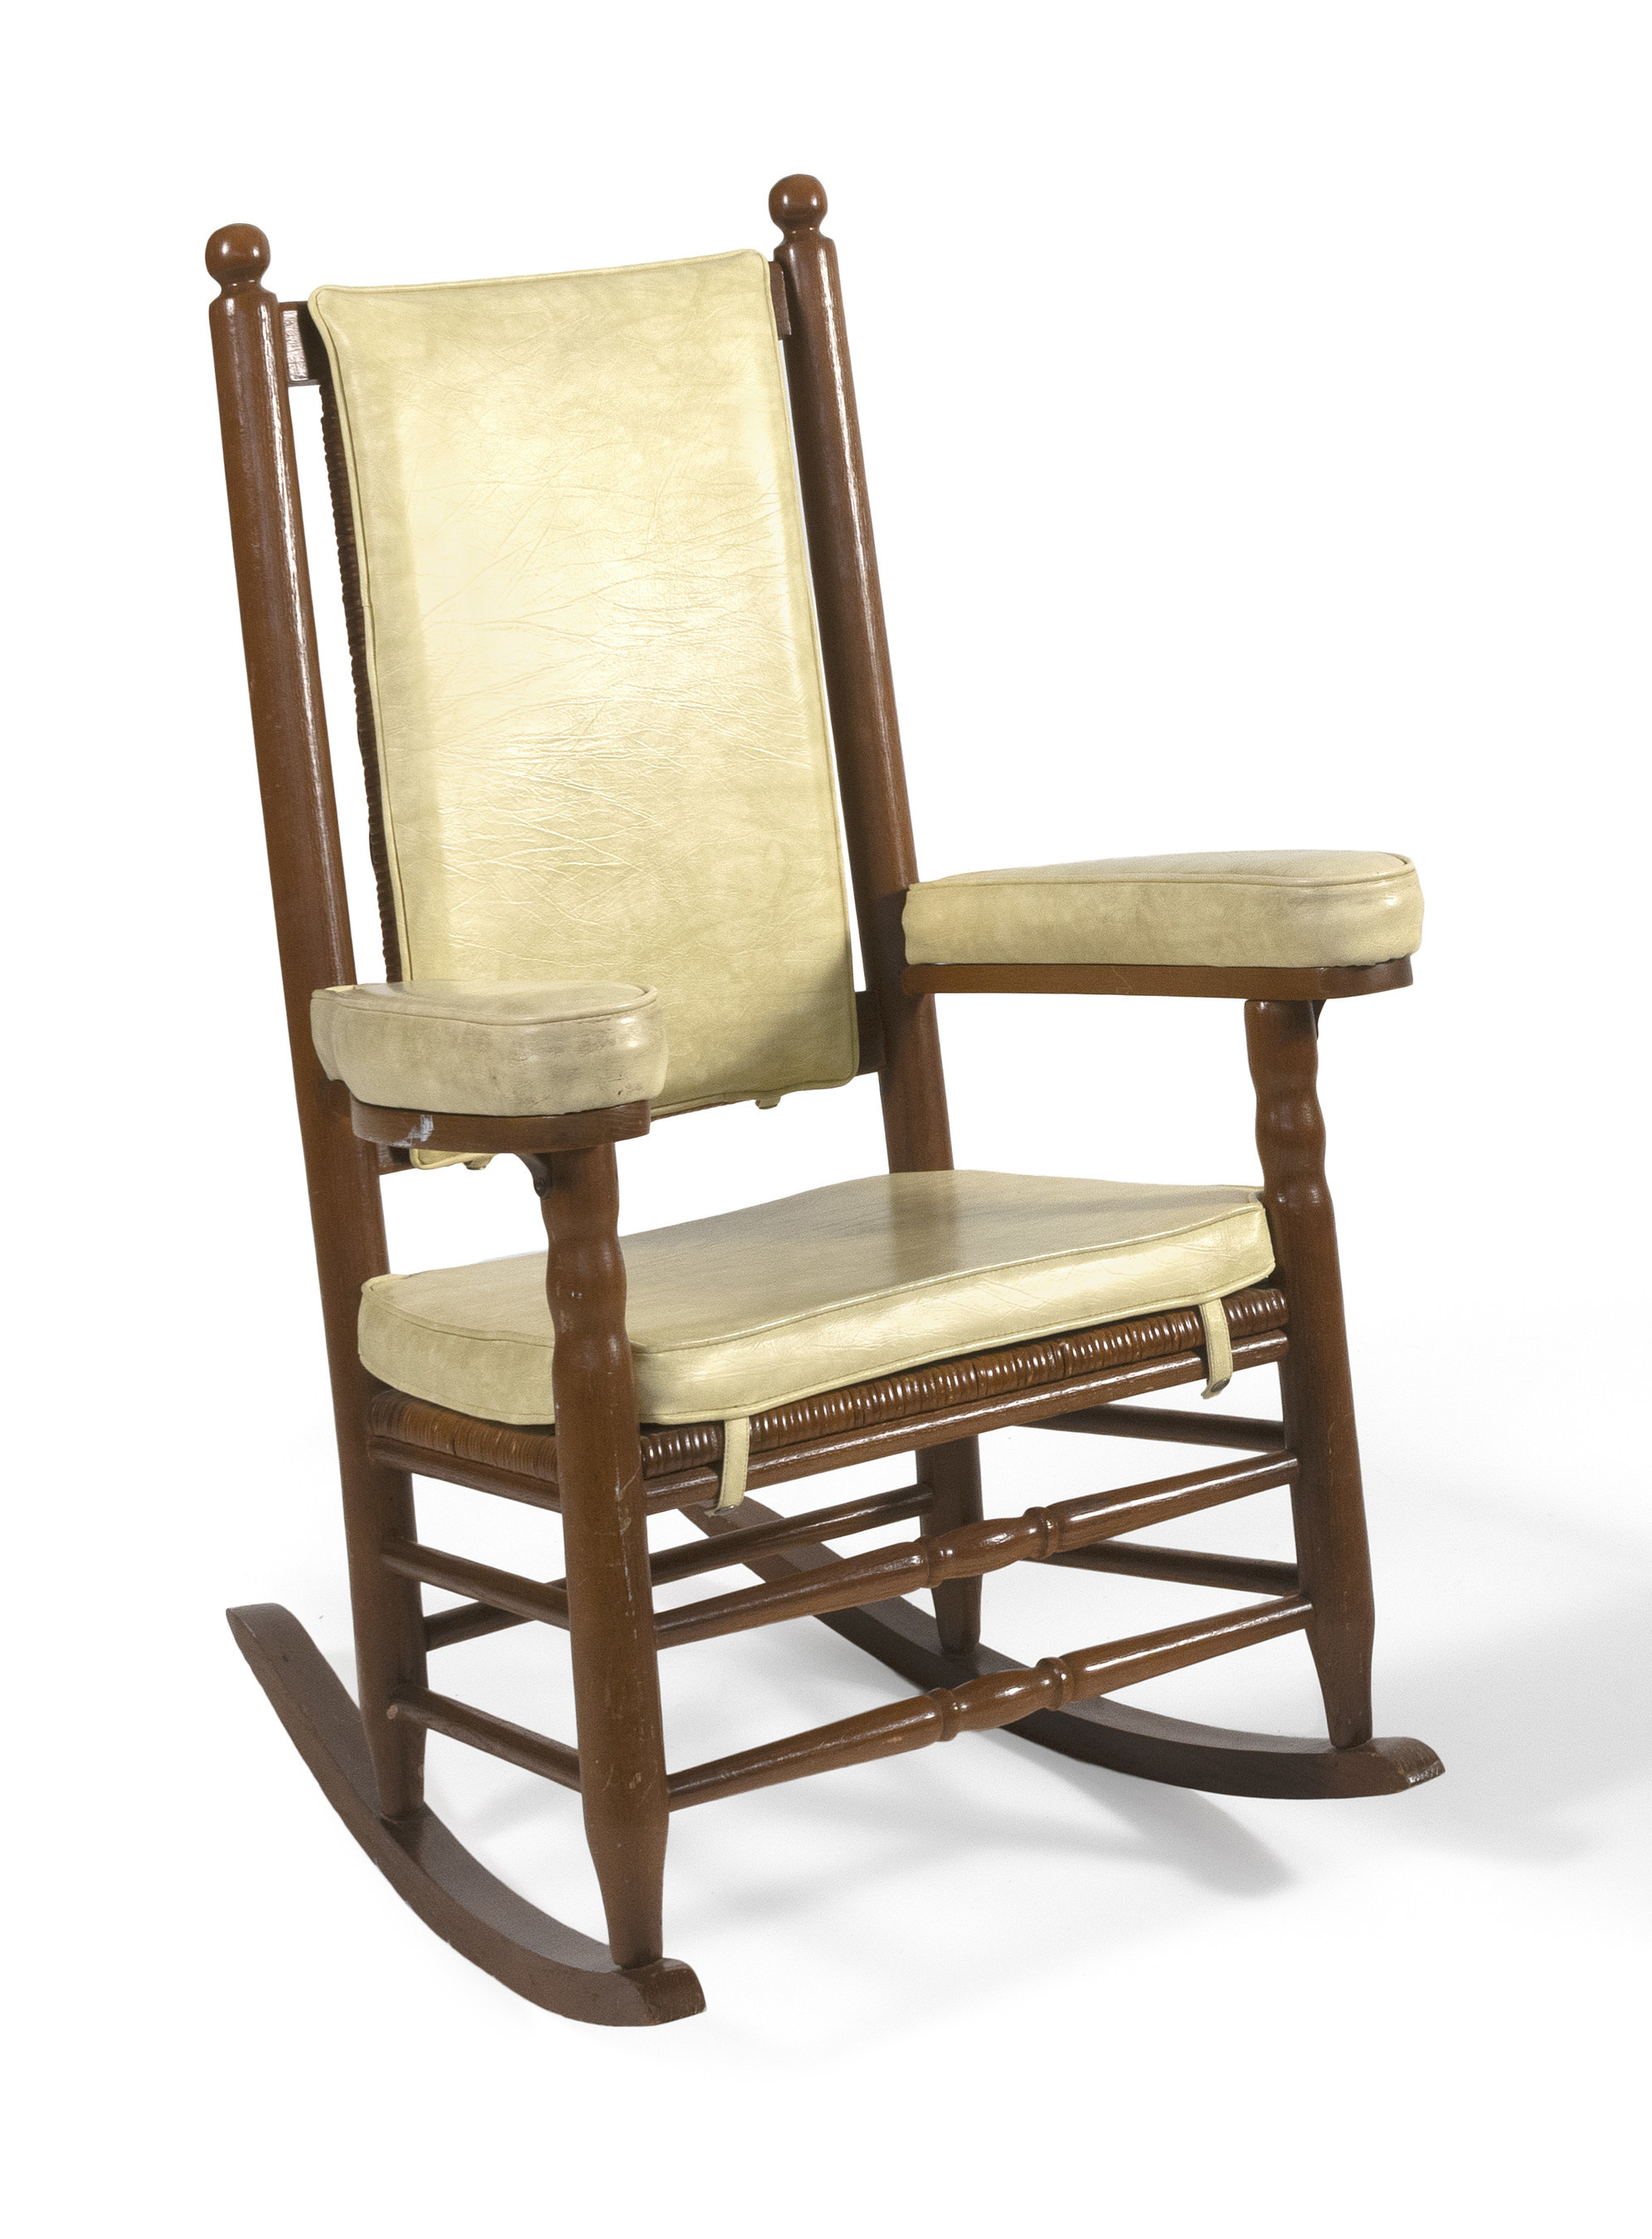 rocking chairs owned by John F Kennedy